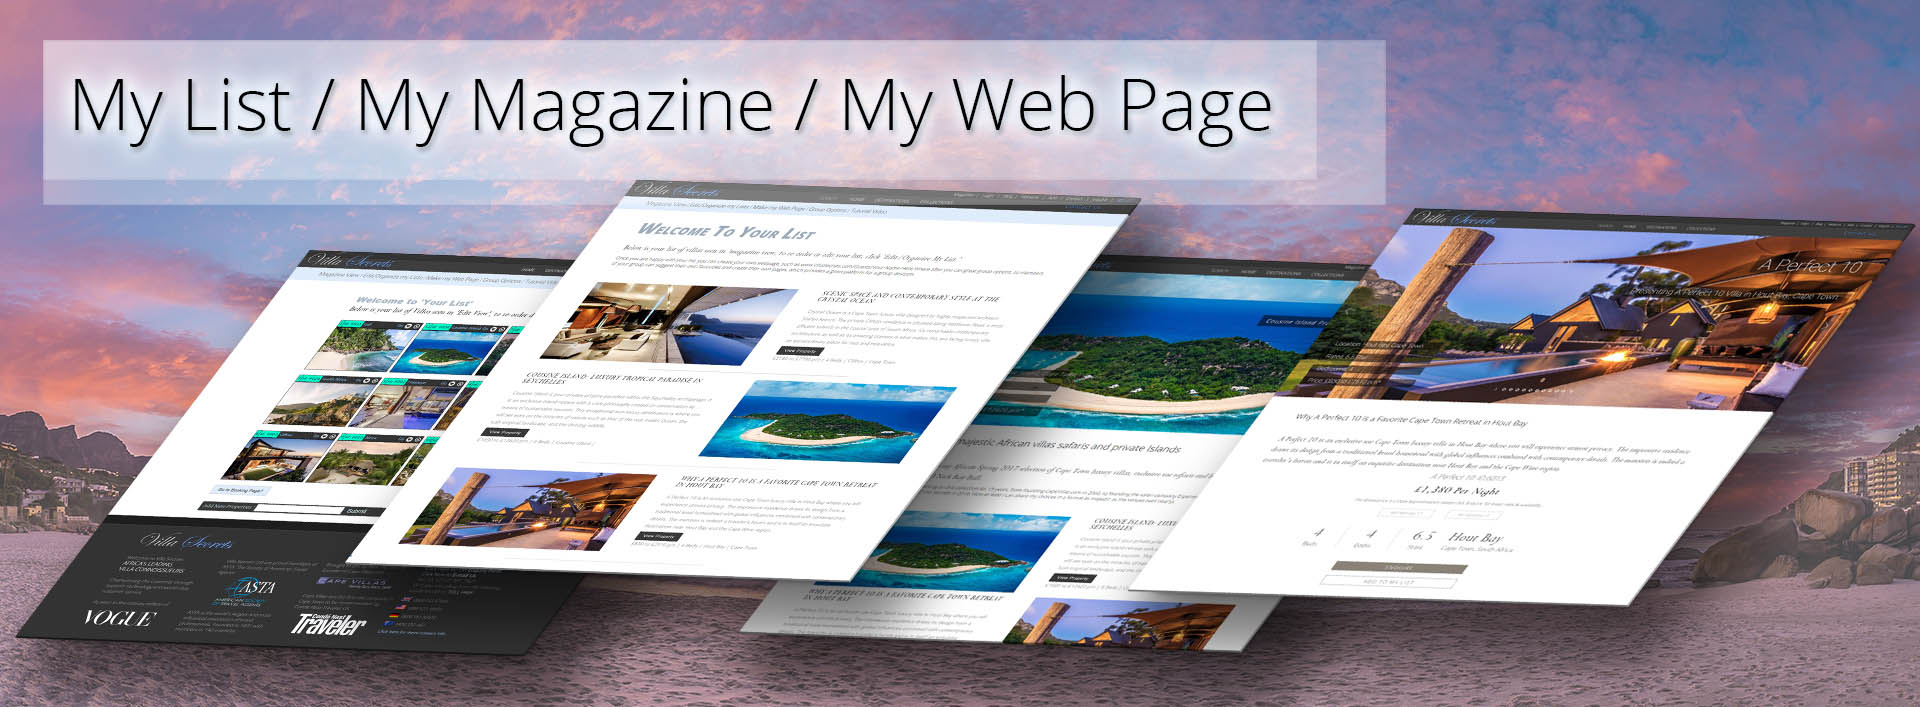 My-List-My-Magazine-My-Web-Page